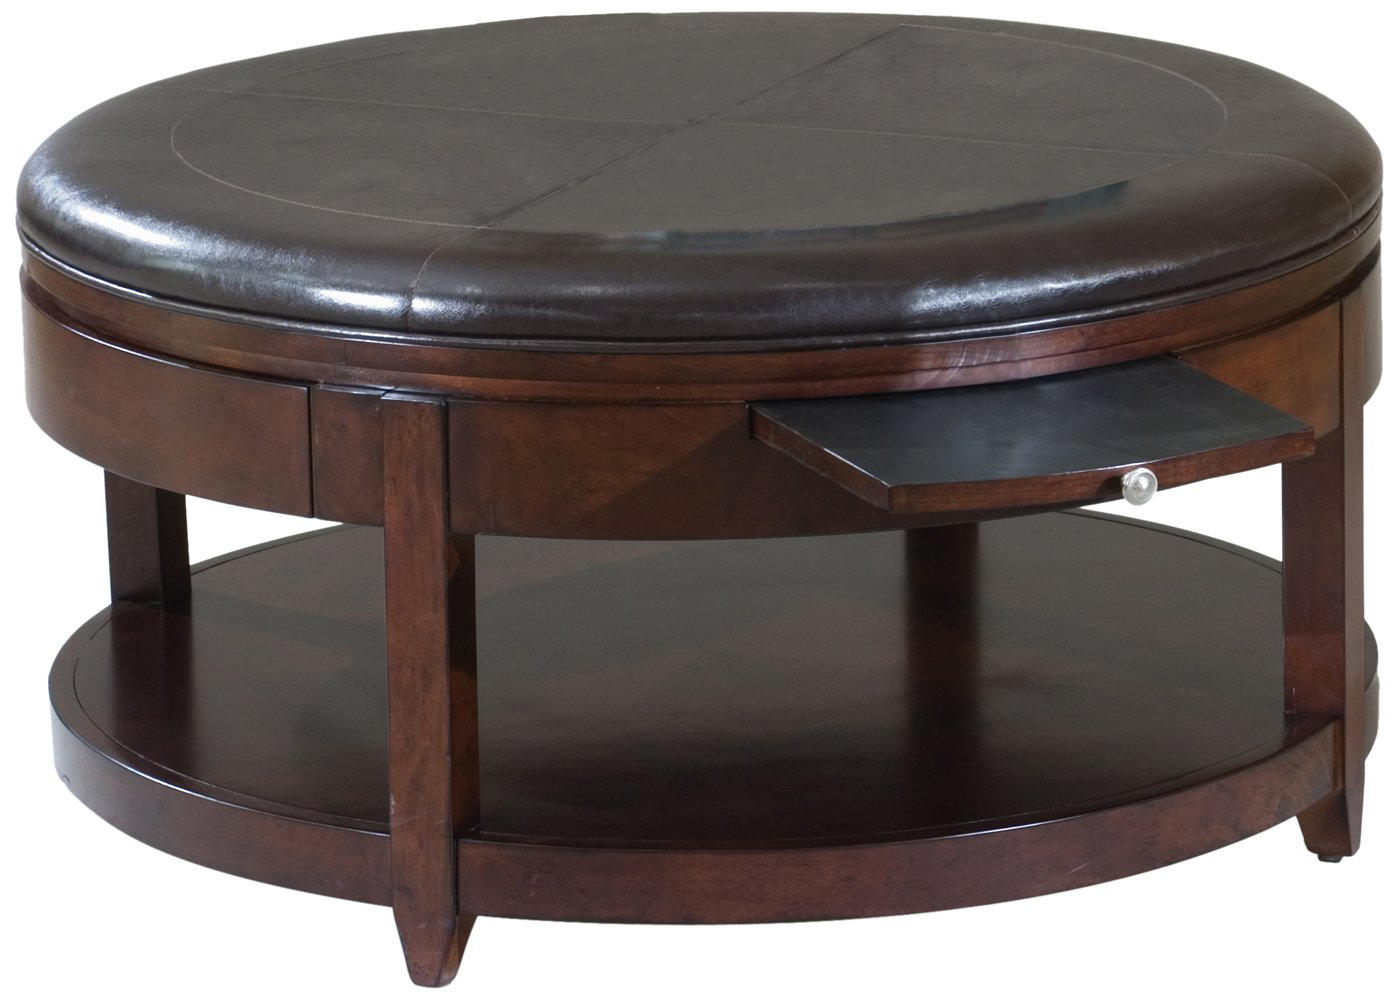 Magnussen Brunswick Wood Round Ottoman And CoffeeTable CHECK PRICE